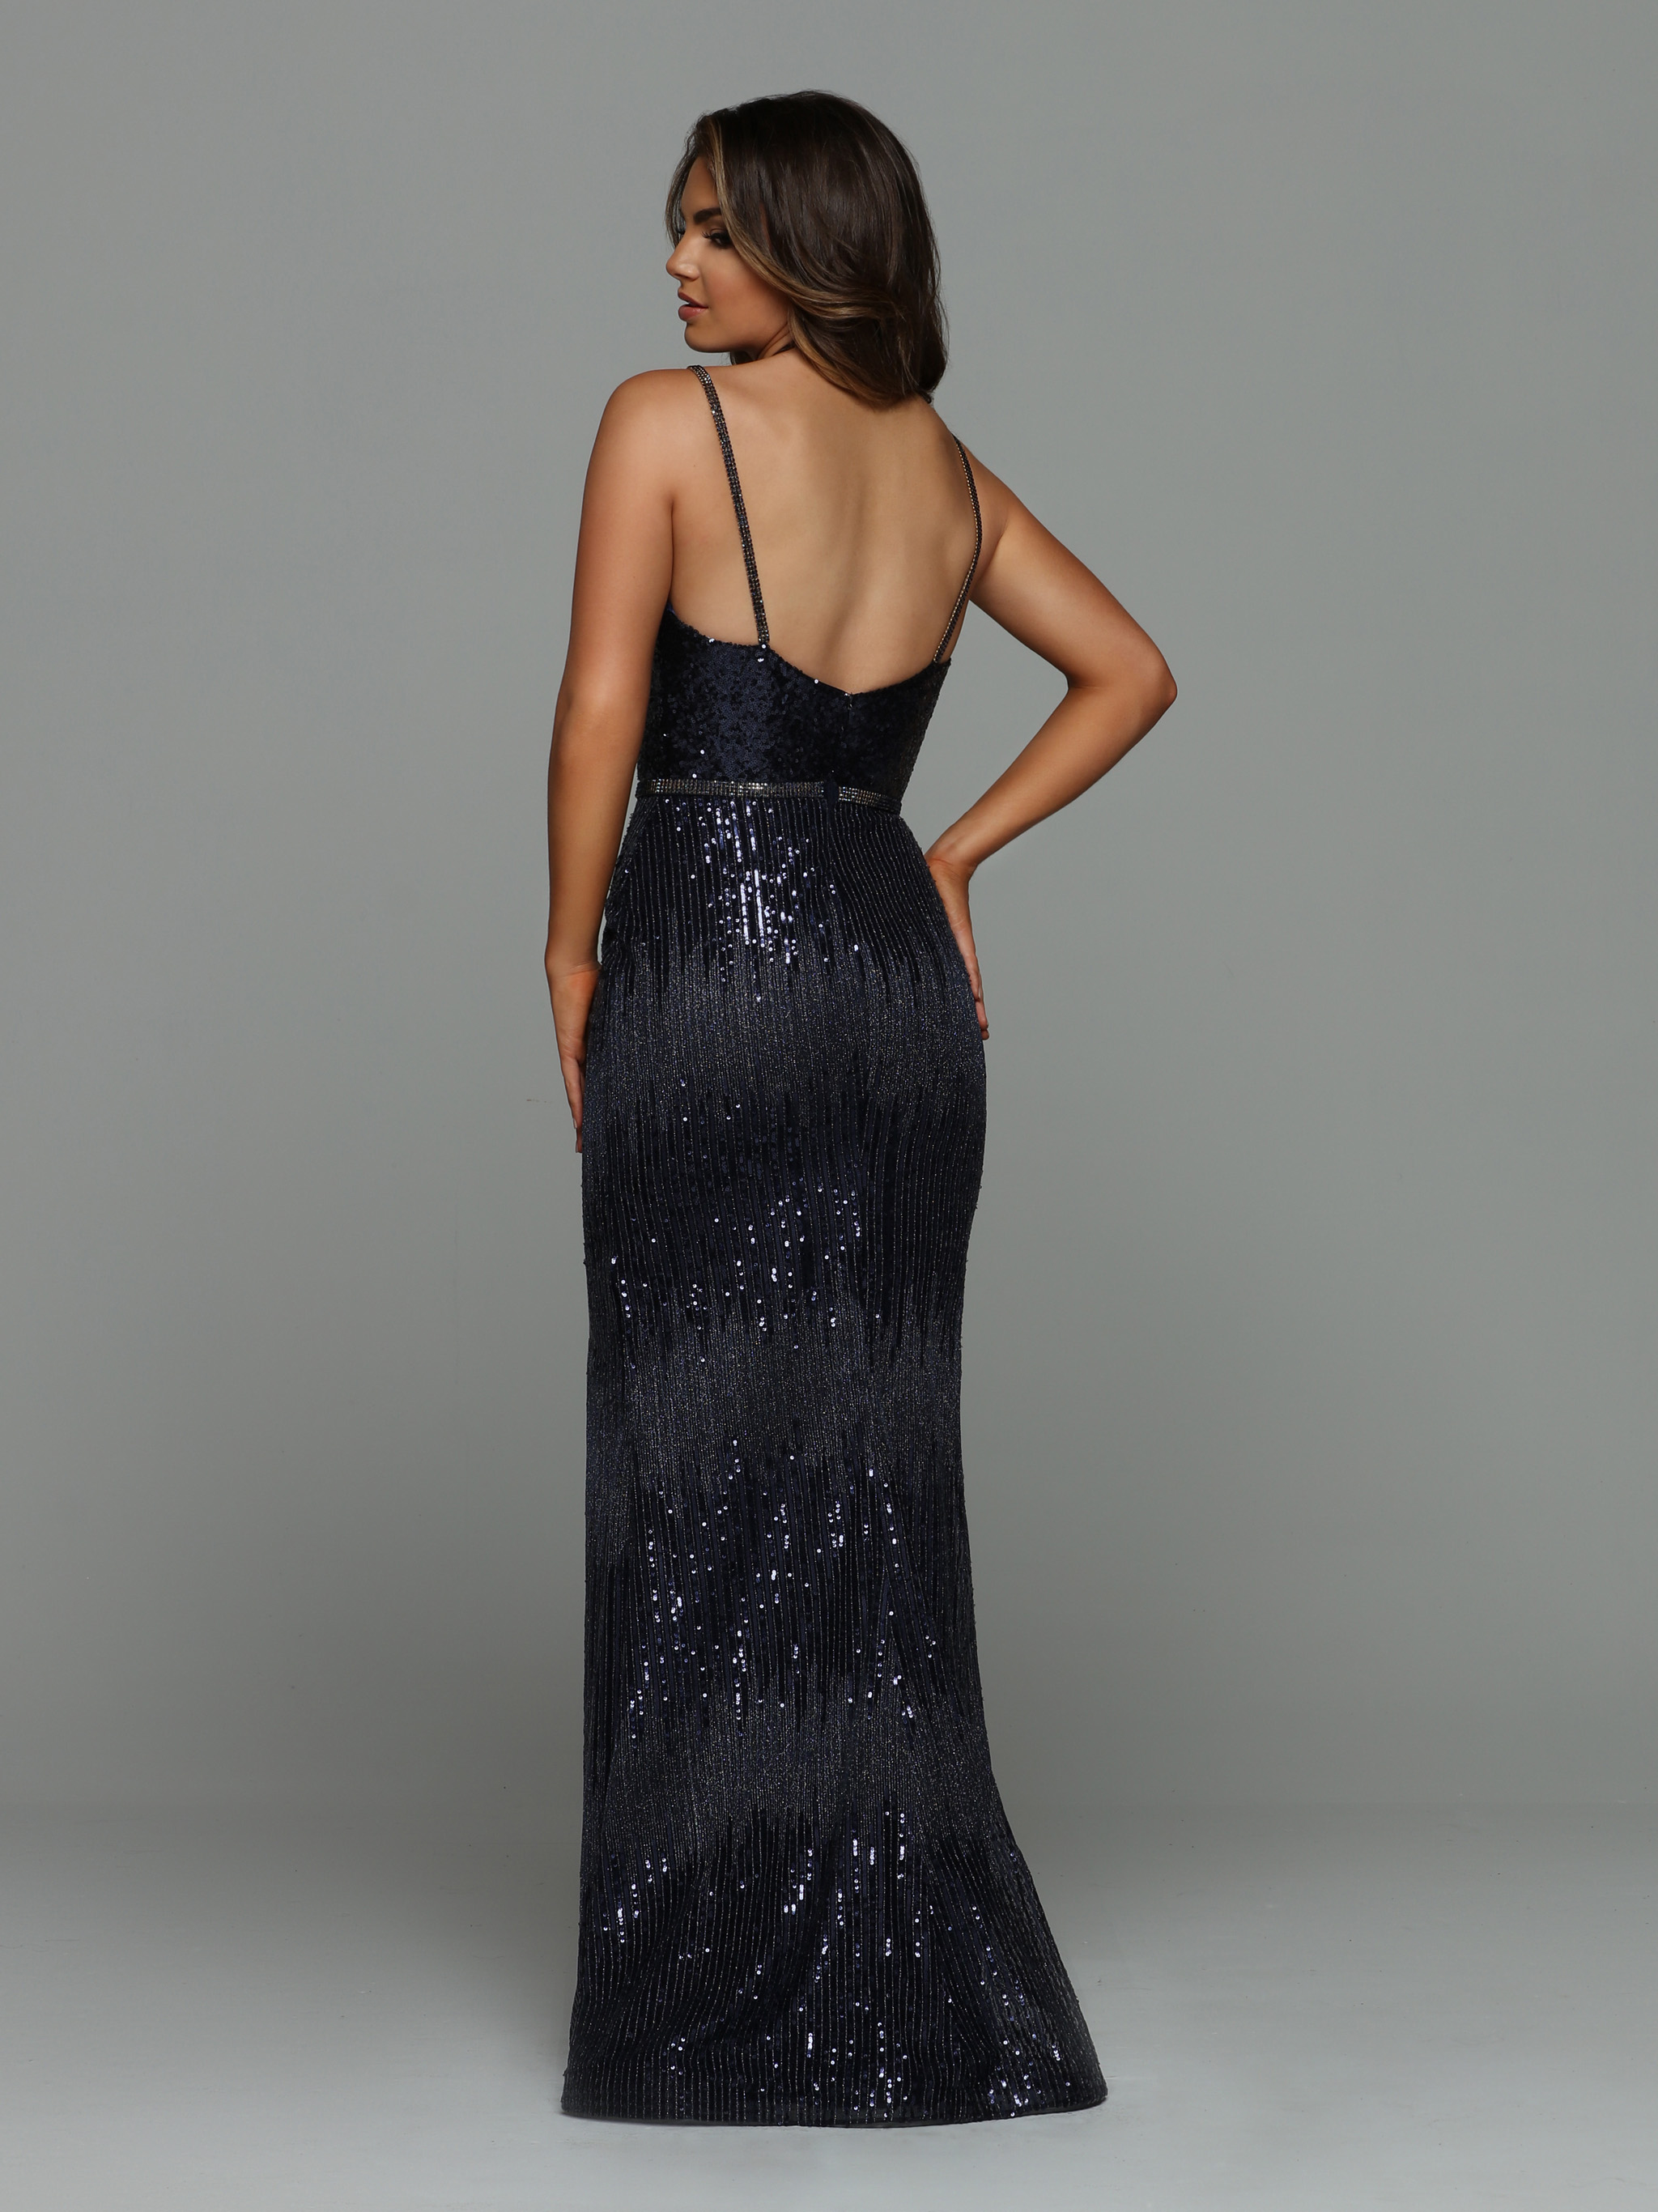 Back view of Style : 71959